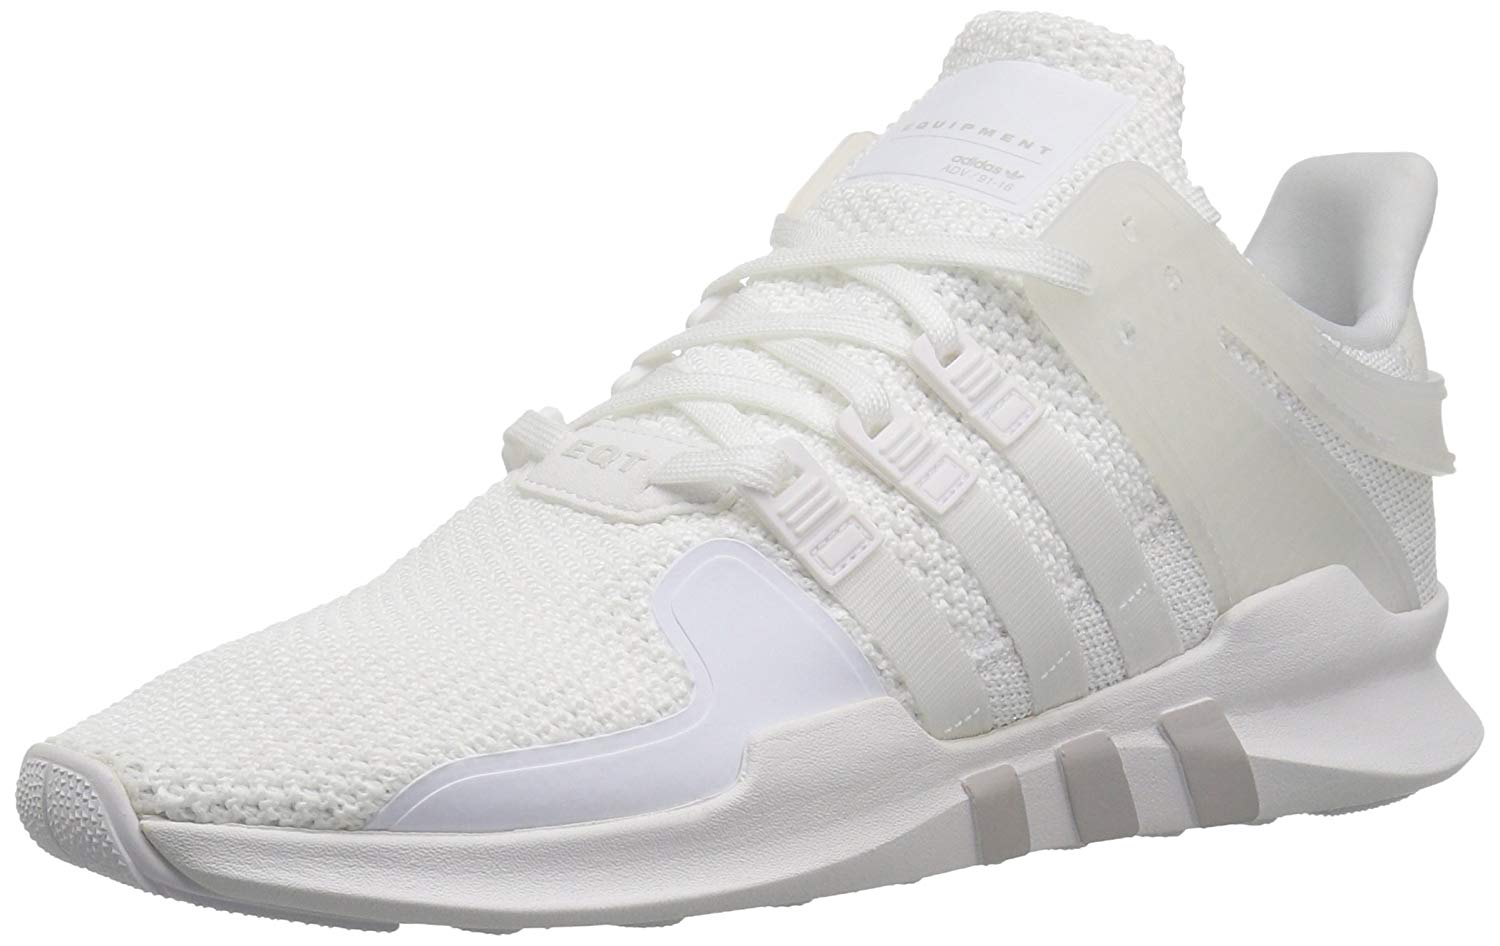 finest selection 8b21d d2207 Details about adidas Originals Women's EQT Support Adv Running,  White/White/Grey, Size 8.5 cDr